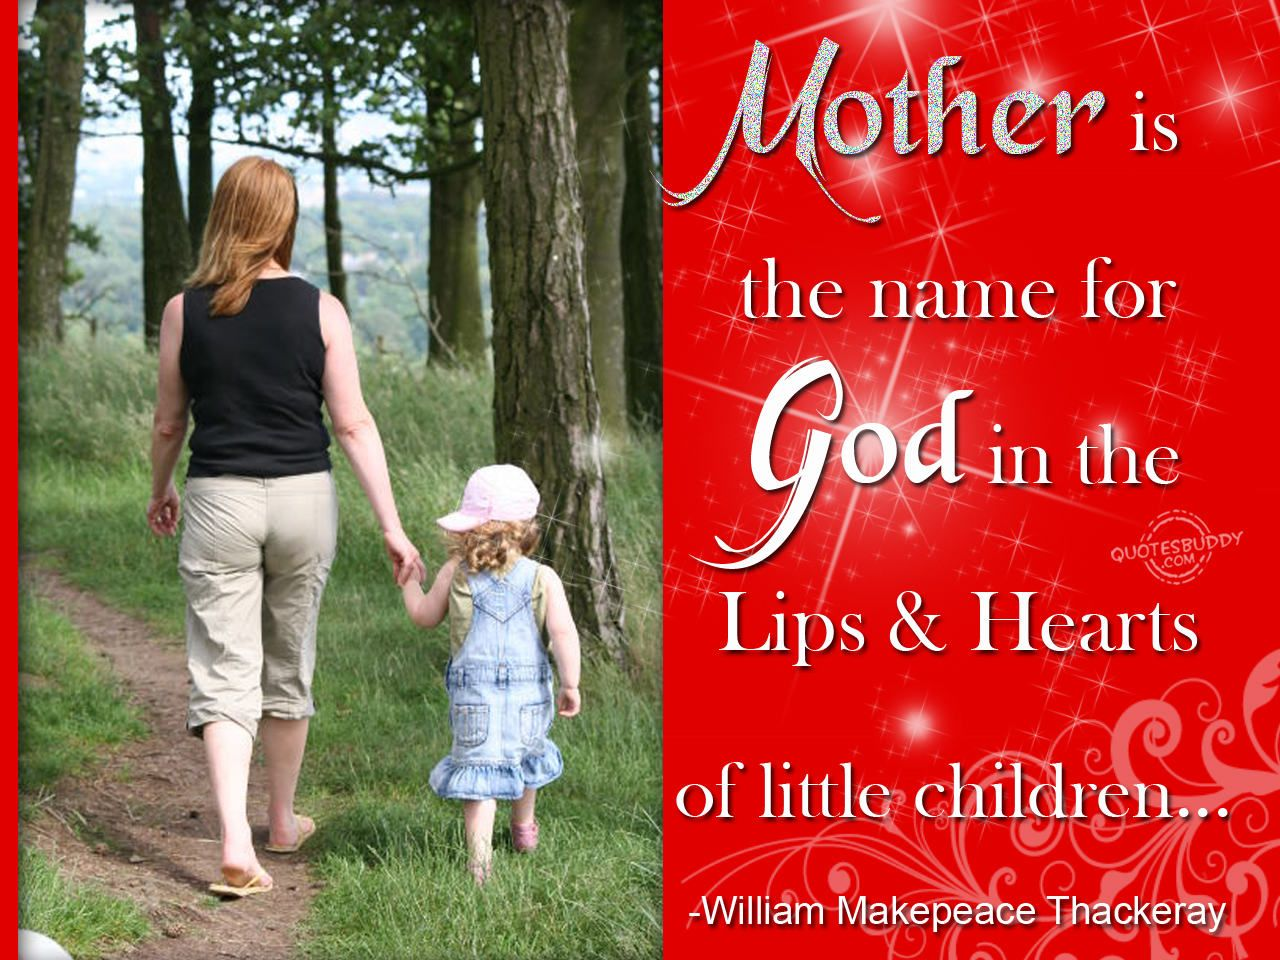 A Mothers Love Quotes 2 Mother Is The Name For God In The Lips And Hearts Of Little